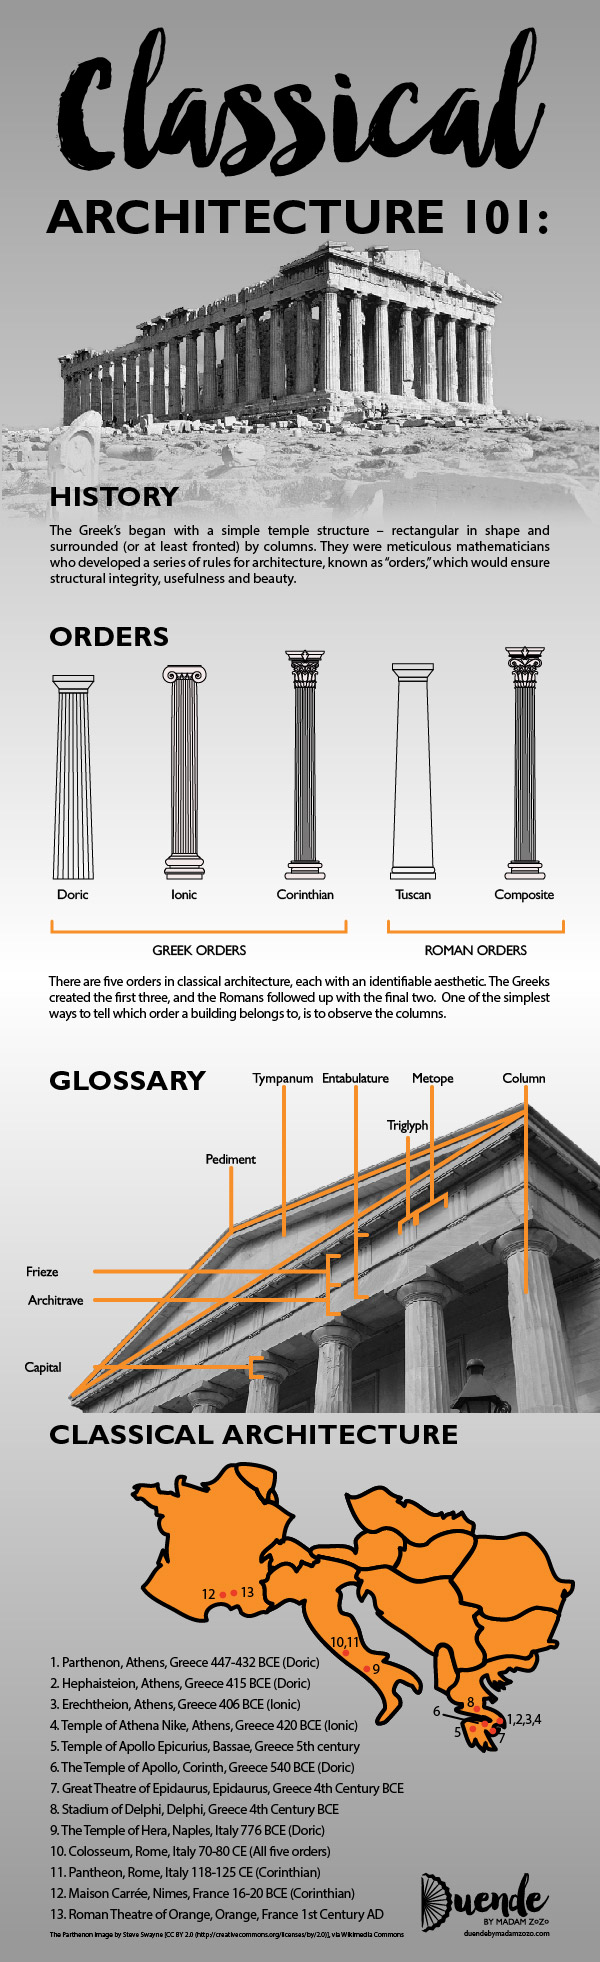 Classical Architecture 101 for Travellers | Duende by Madam ZoZo